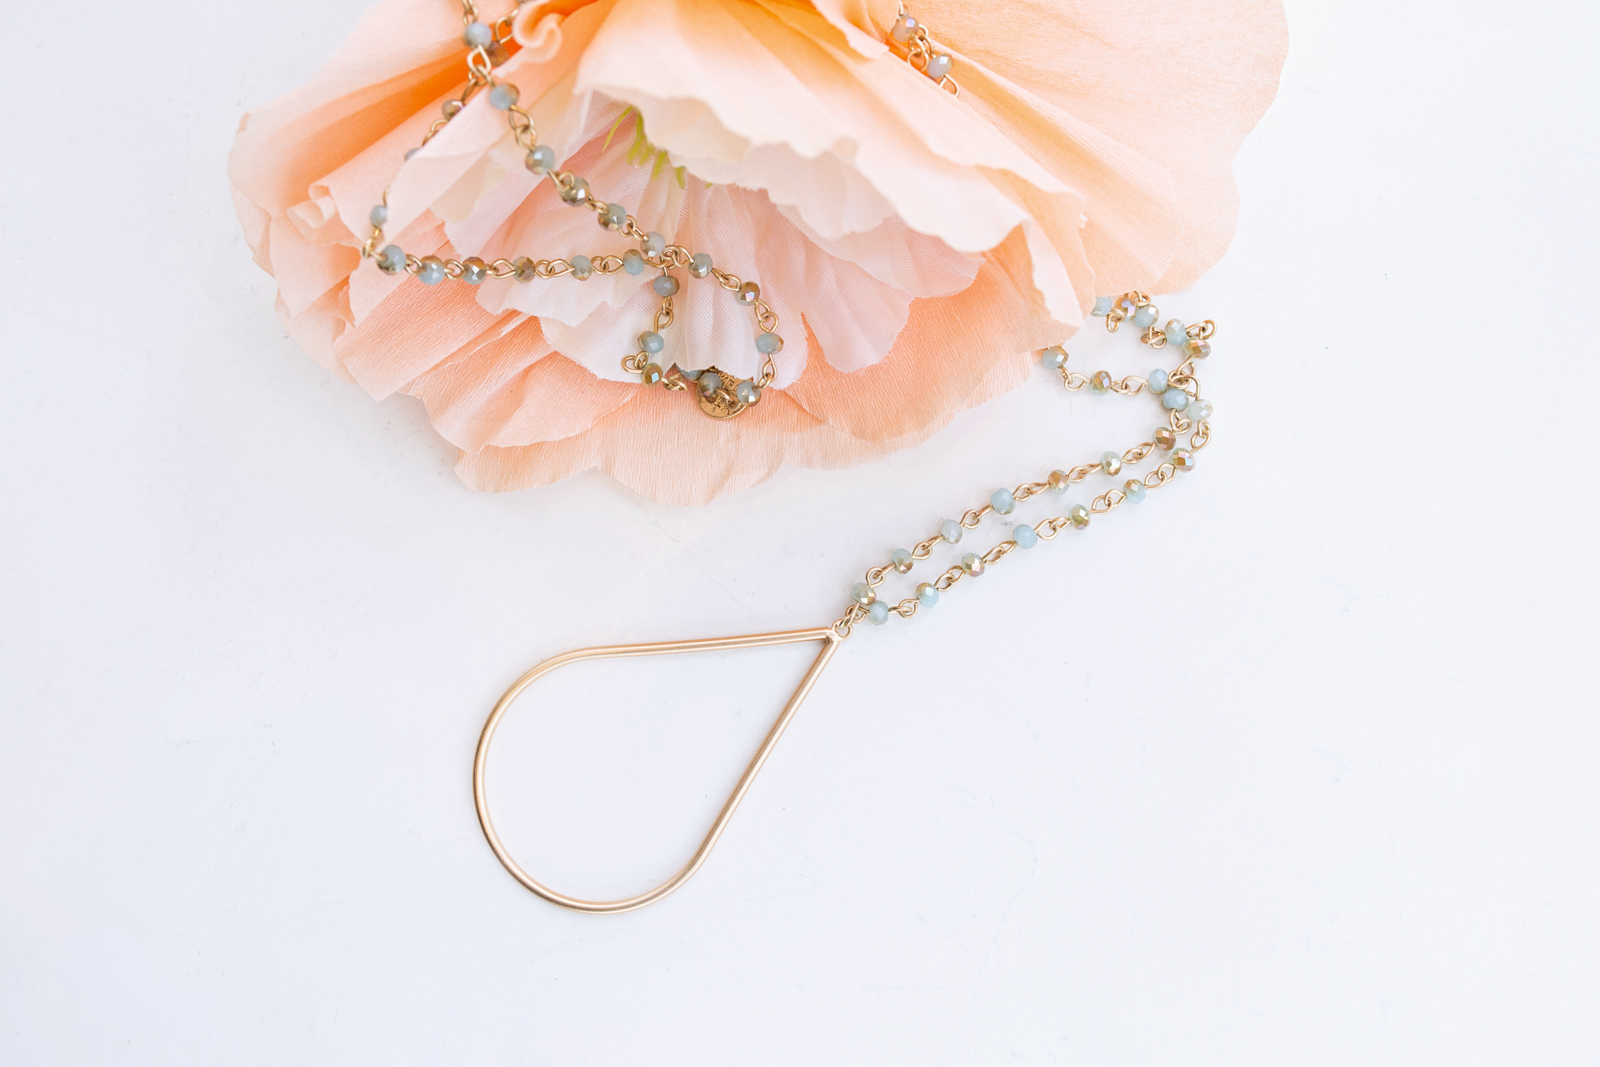 Meadow boutique seattle retail clothing store Yuliya Rae photography branding services-9.jpg